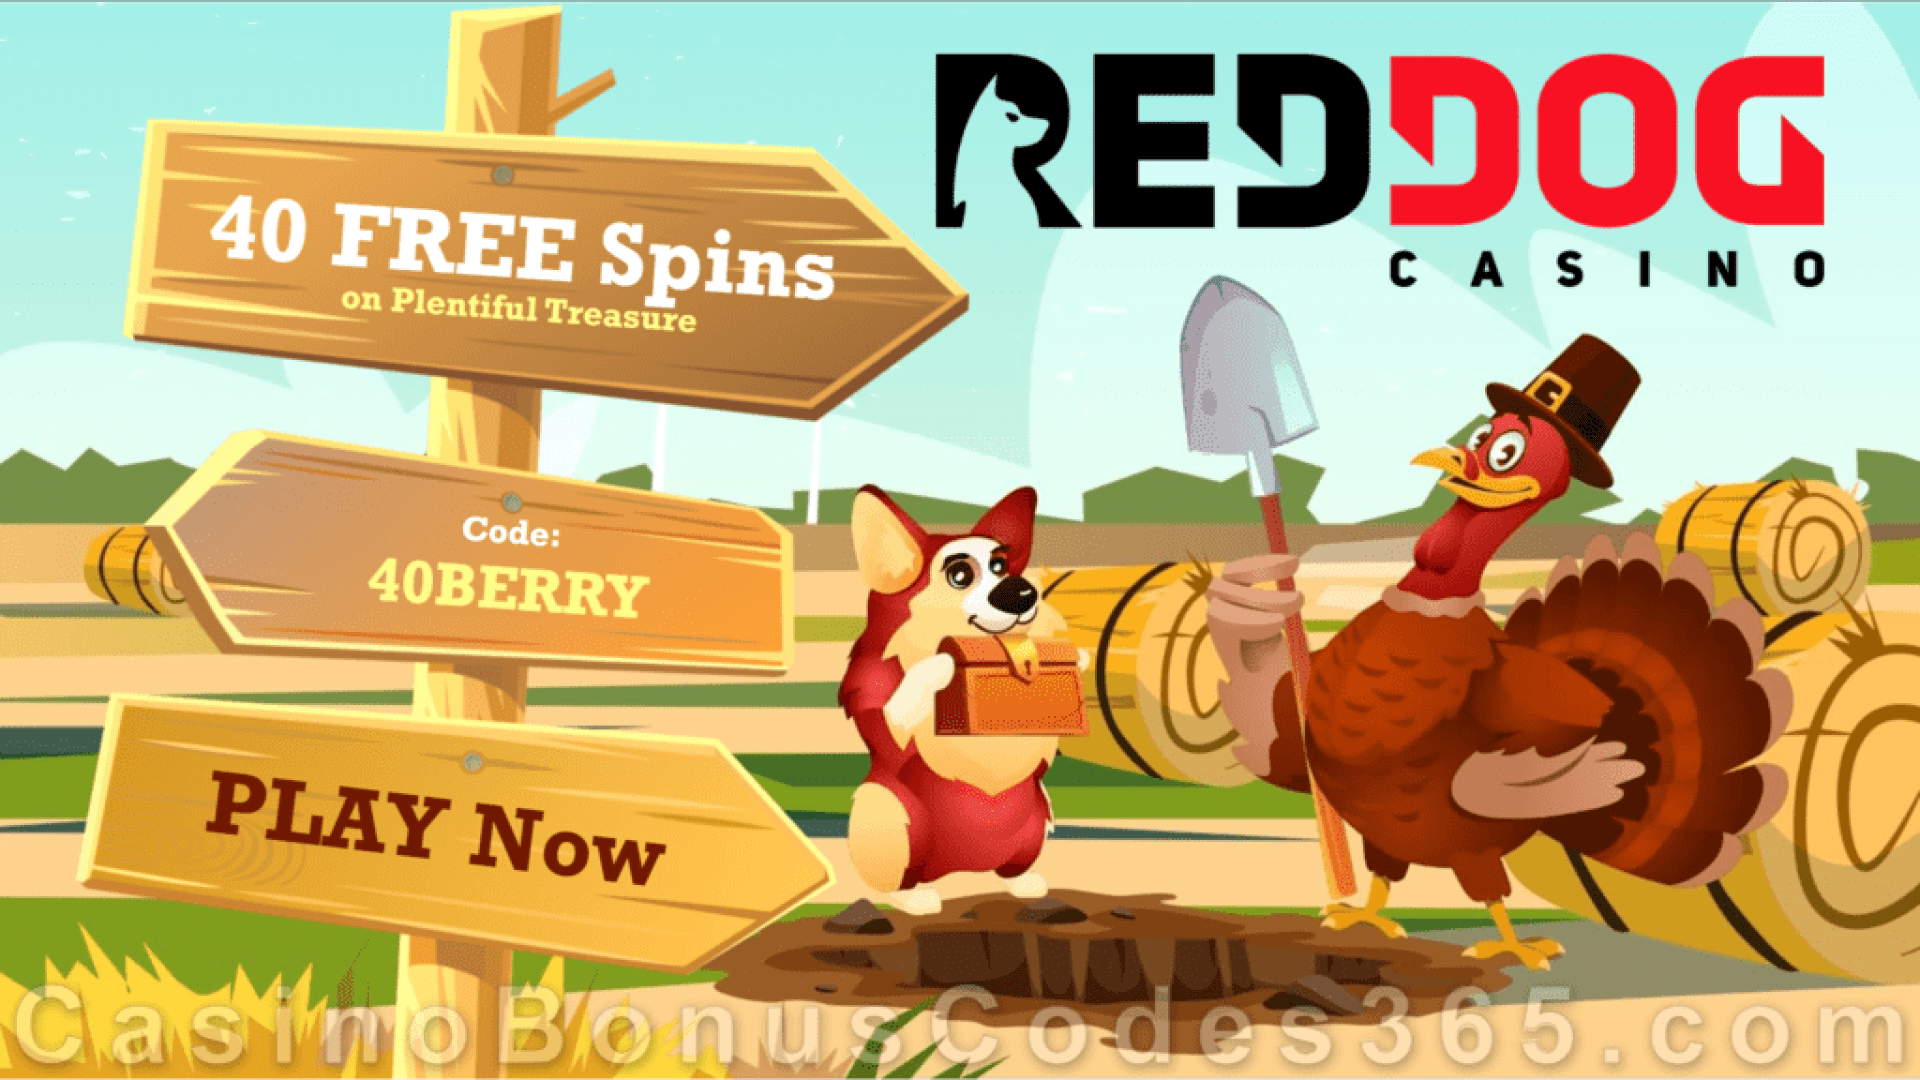 Red Dog Casino 40 FREE Spins on RTG Plentiful Treasure Special Thanksgiving No Deposit Promo